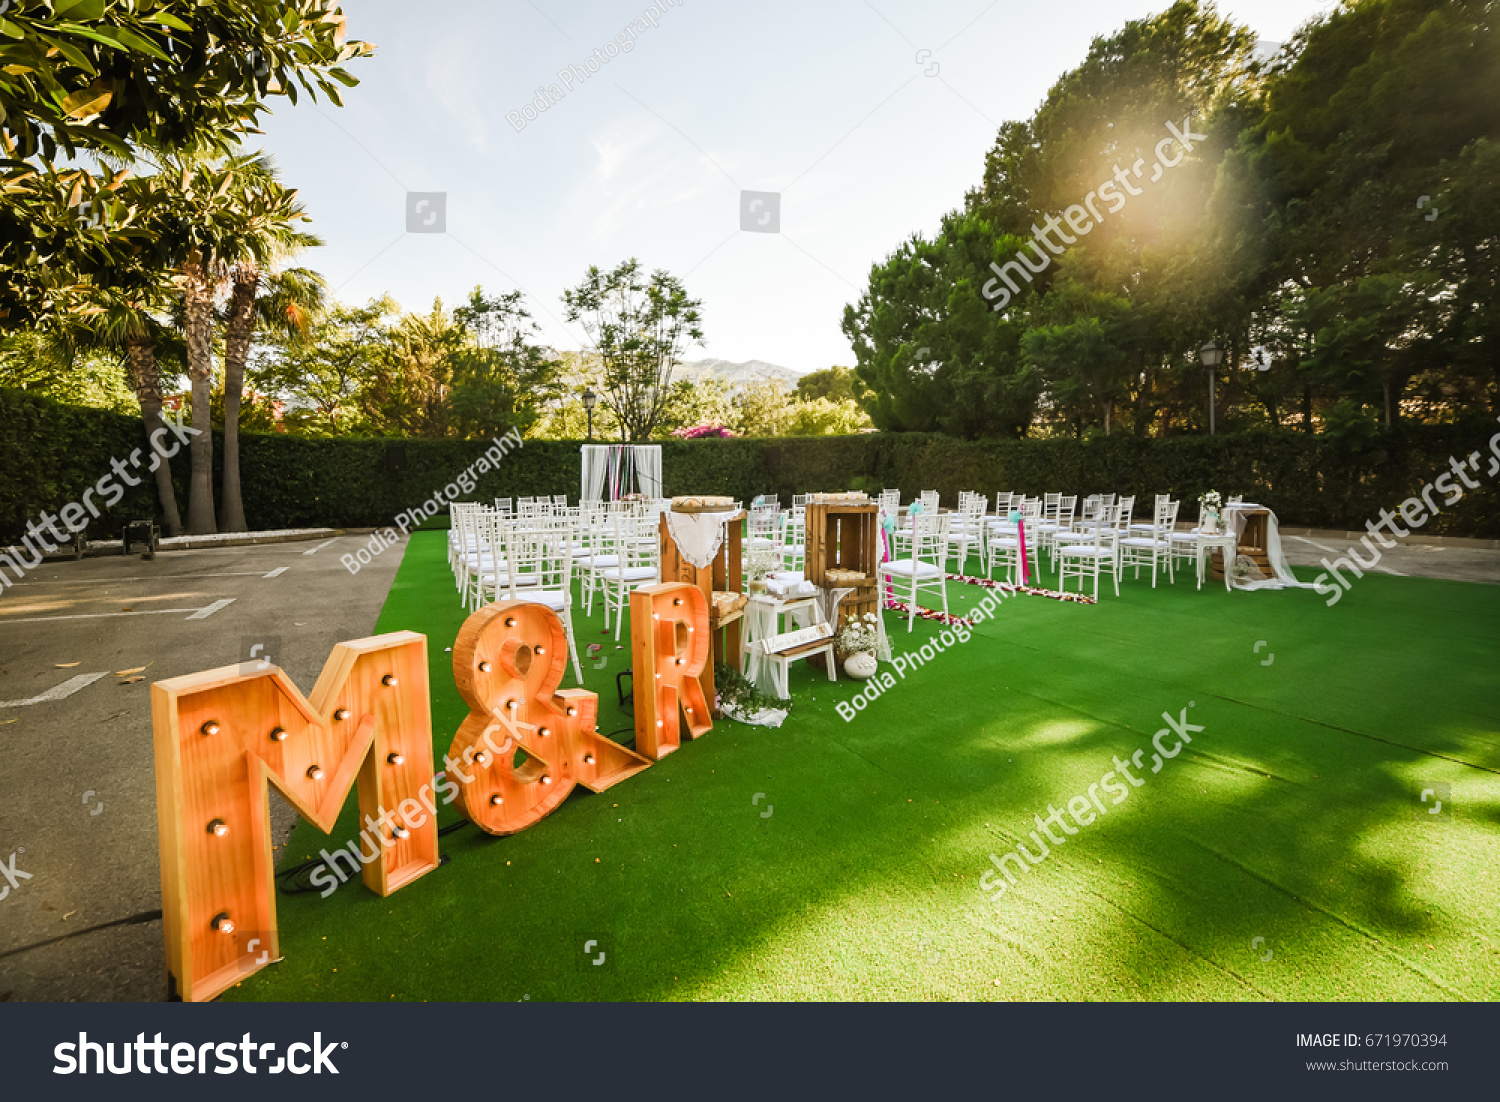 Rustic Wedding Outdoor Photo Zone Hand Made Decorations Includes Two Big Letters M And